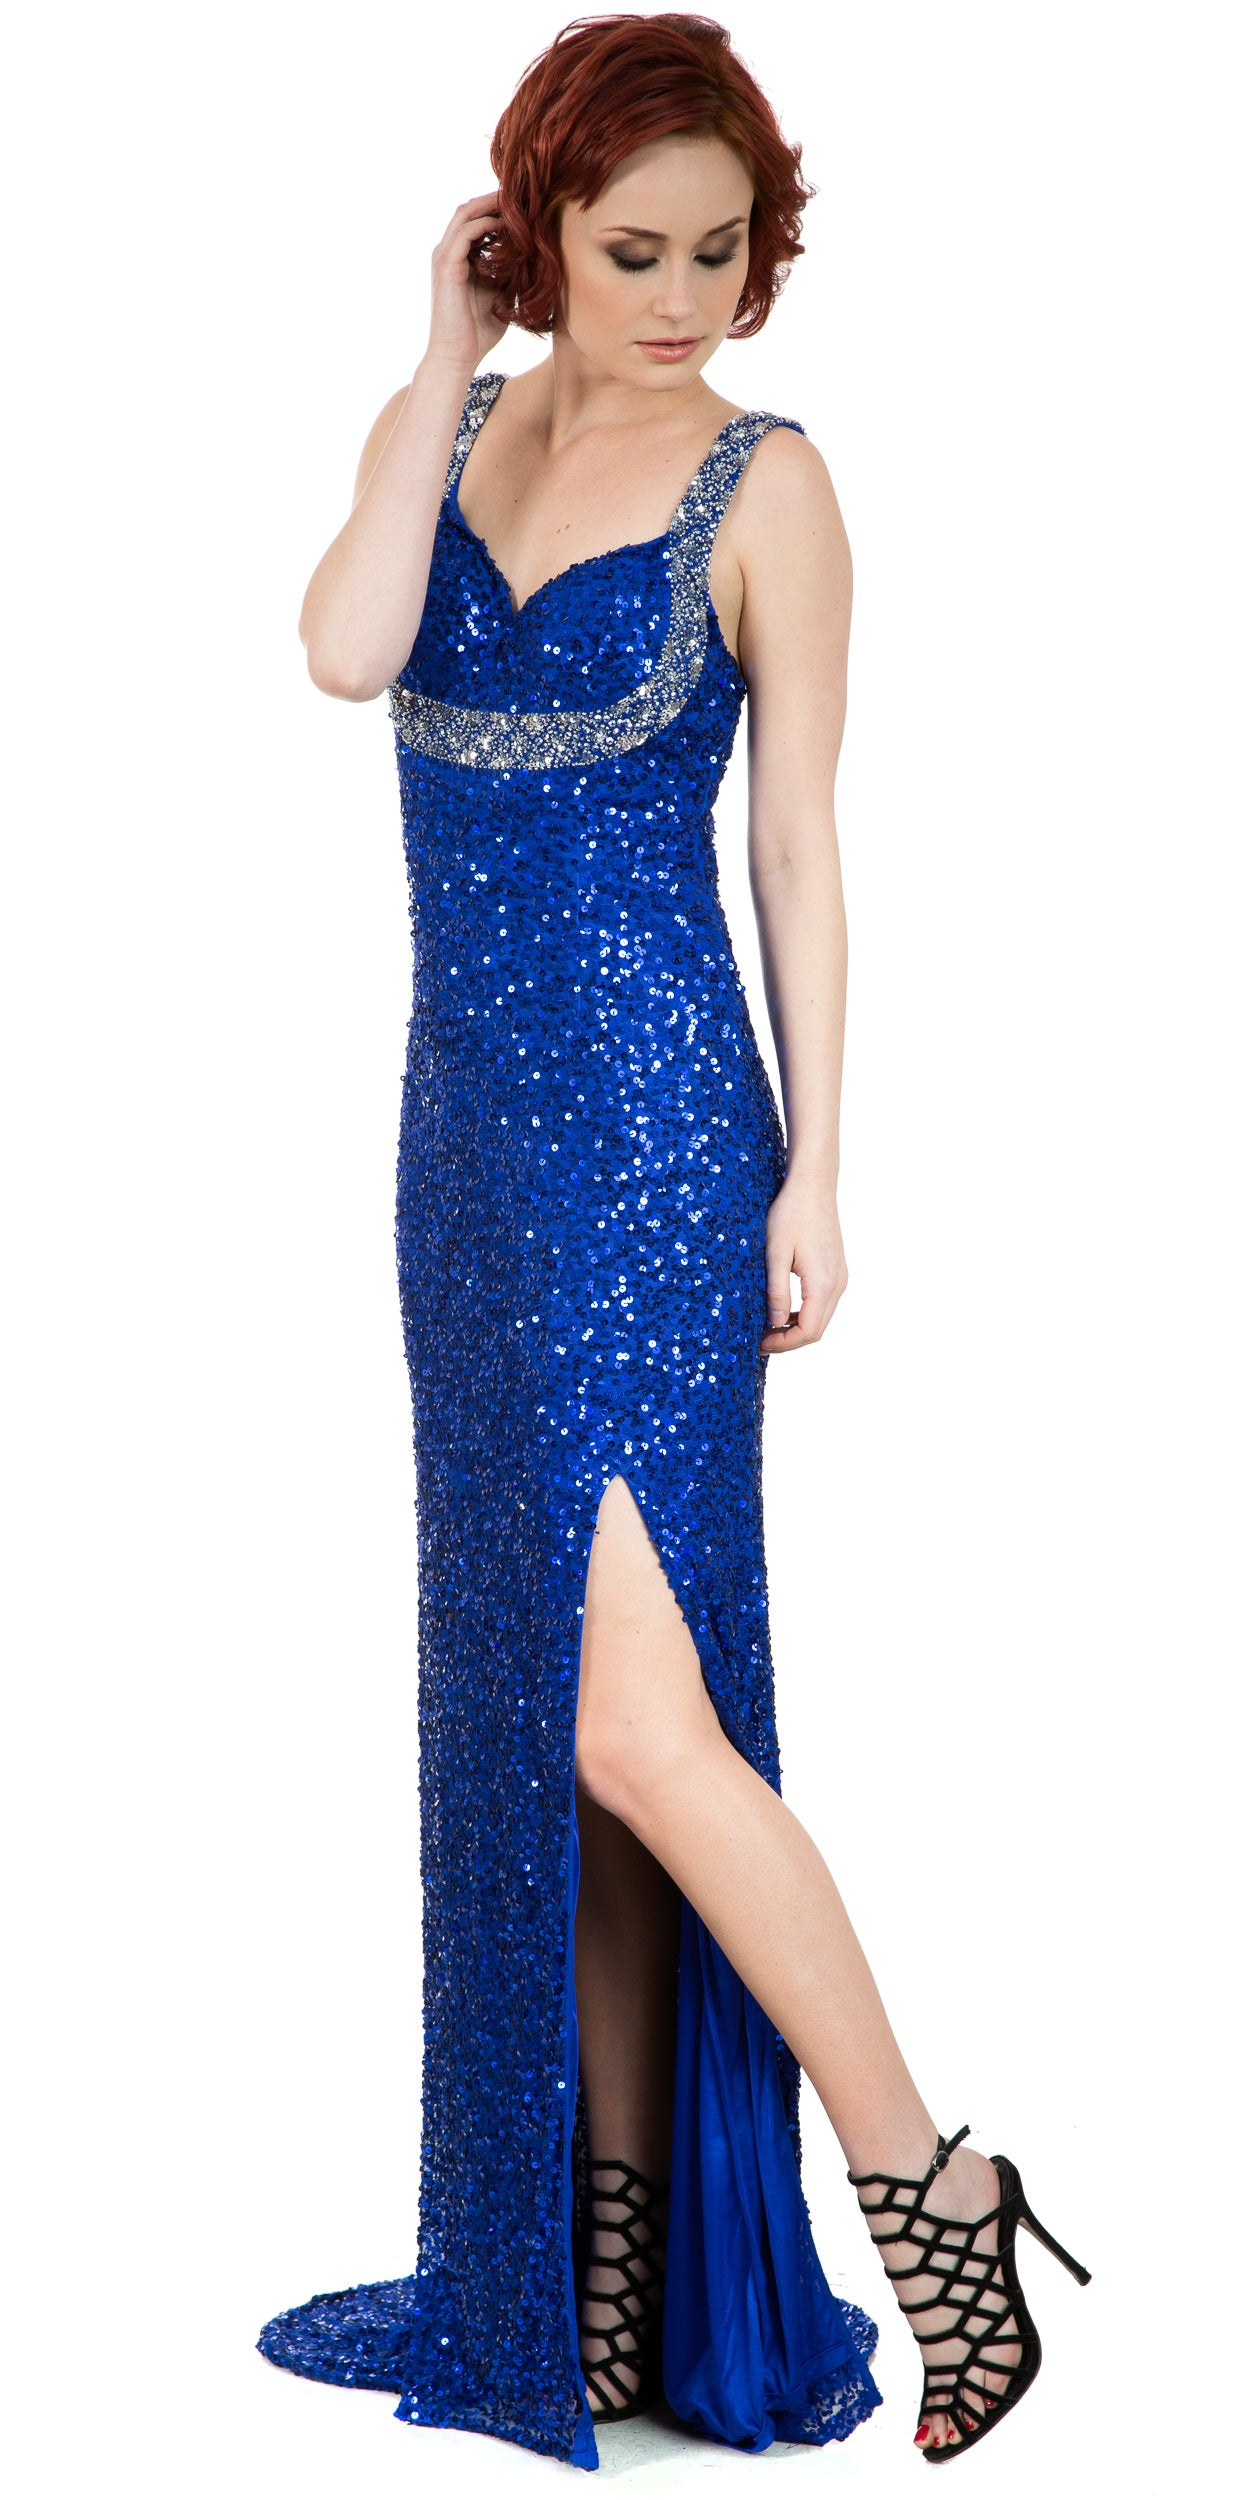 Image of Broad Straps Front Slit Sequined Long Formal Prom Dress in Royal Blue